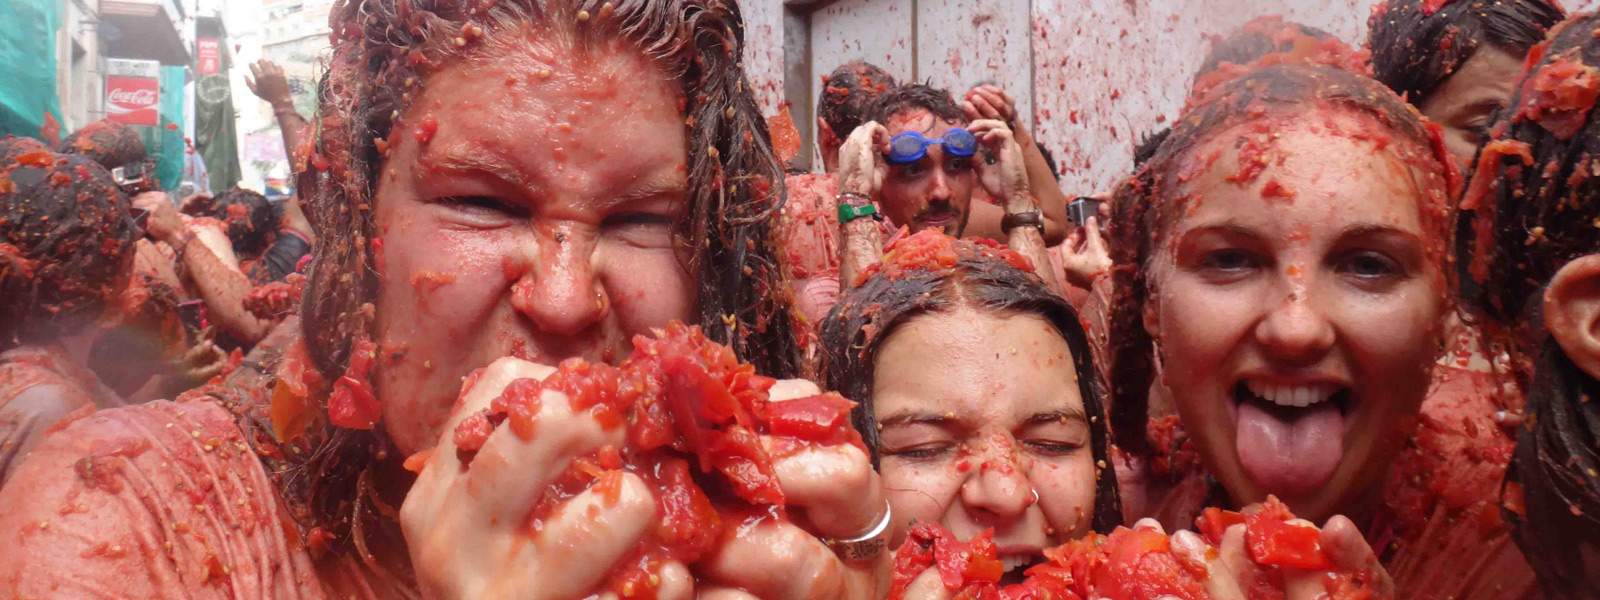 Three young women covered in tomatoes at La Tomatina food festival in Spain.